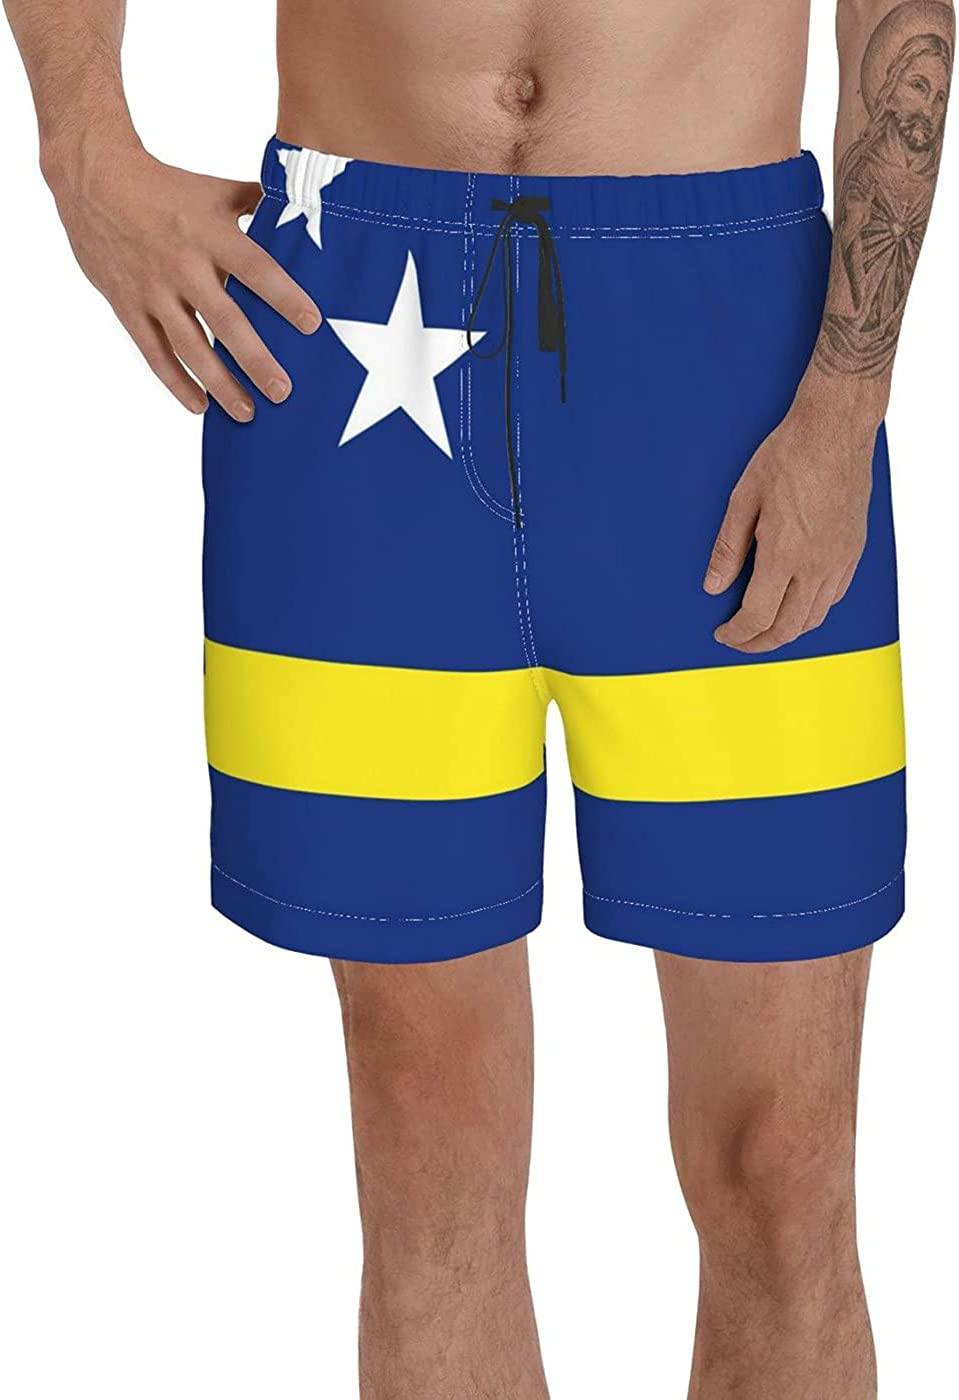 Count Curaçao Flag Men's 3D Printed Funny Summer Quick Dry Swim Short Board Shorts with